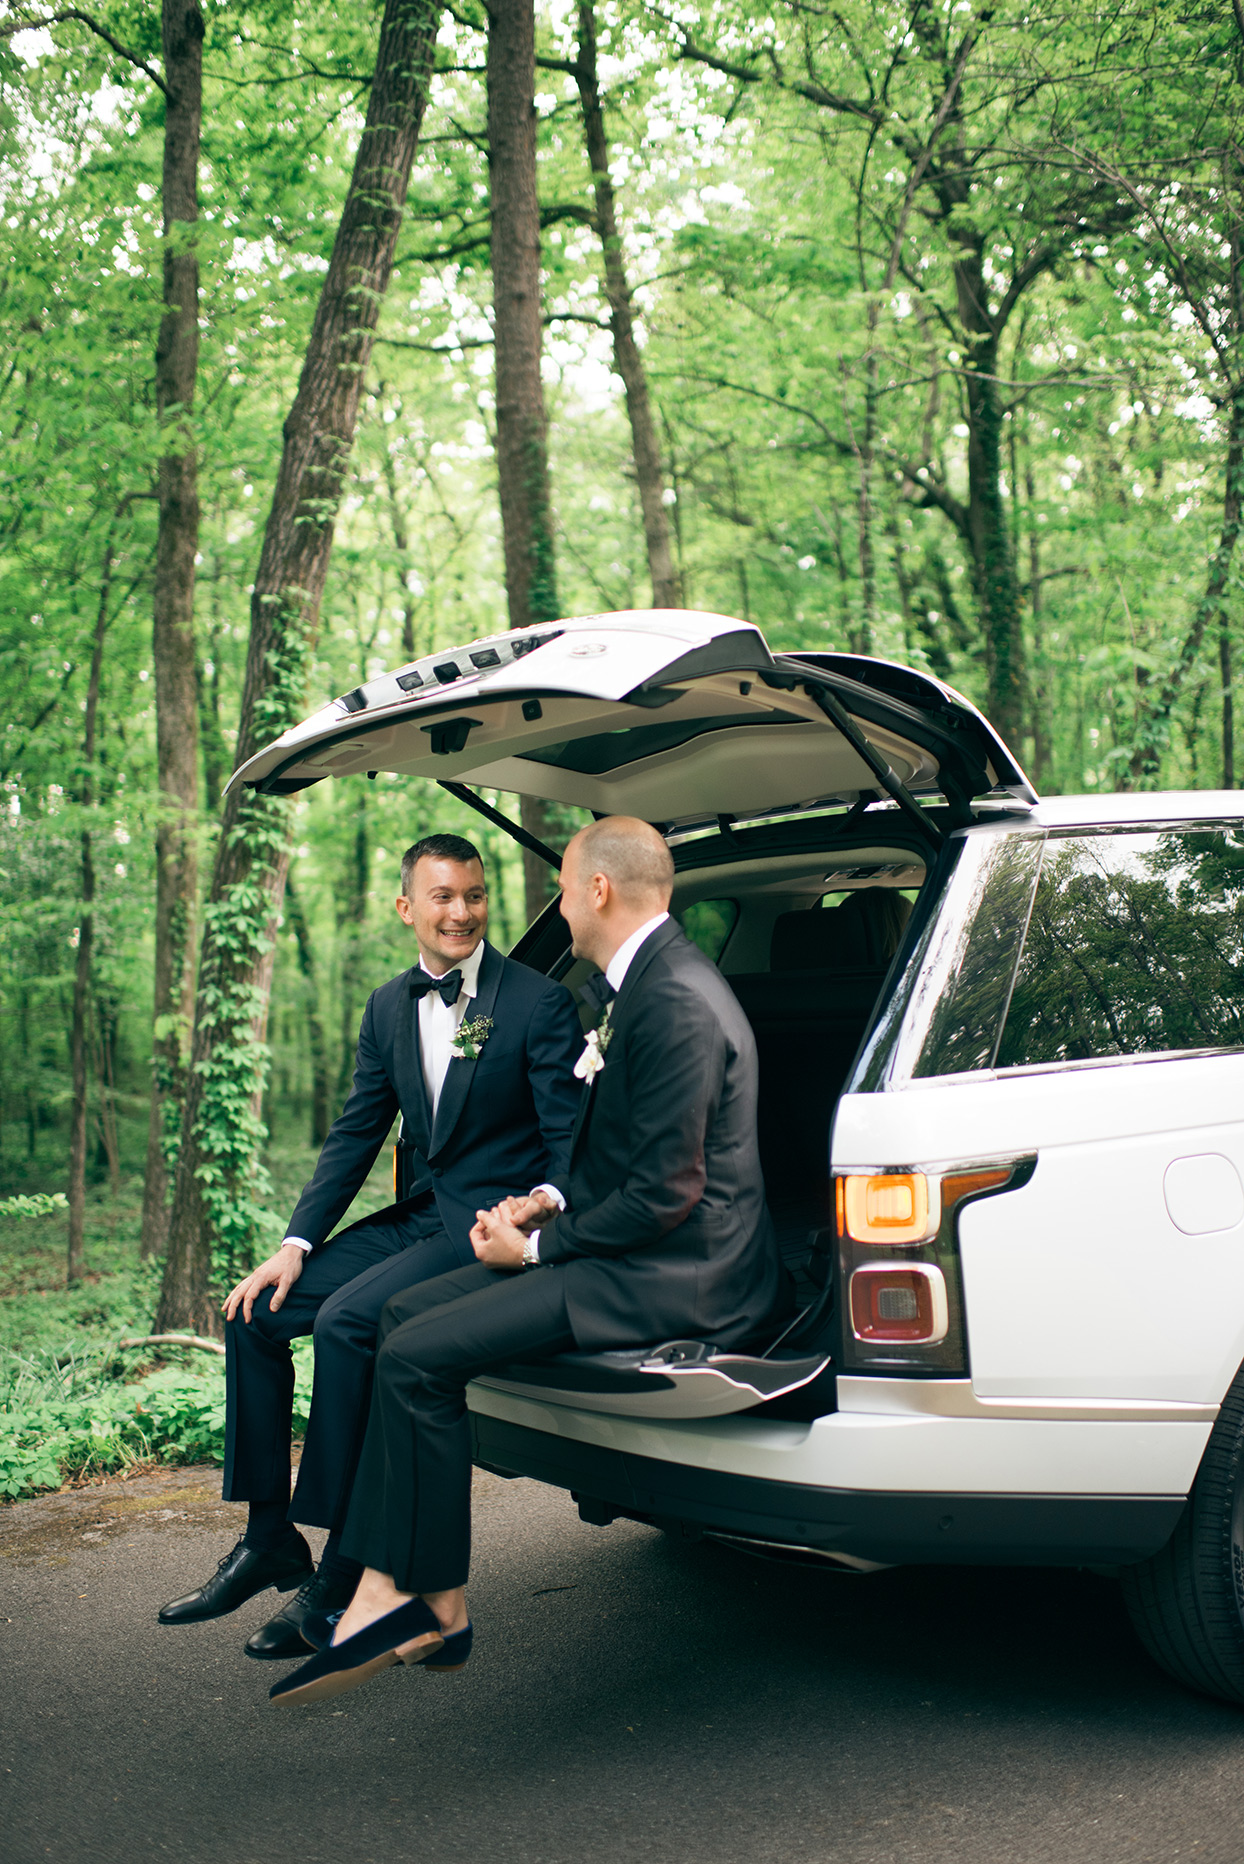 grooms sitting inside open tailgate of car in the forest